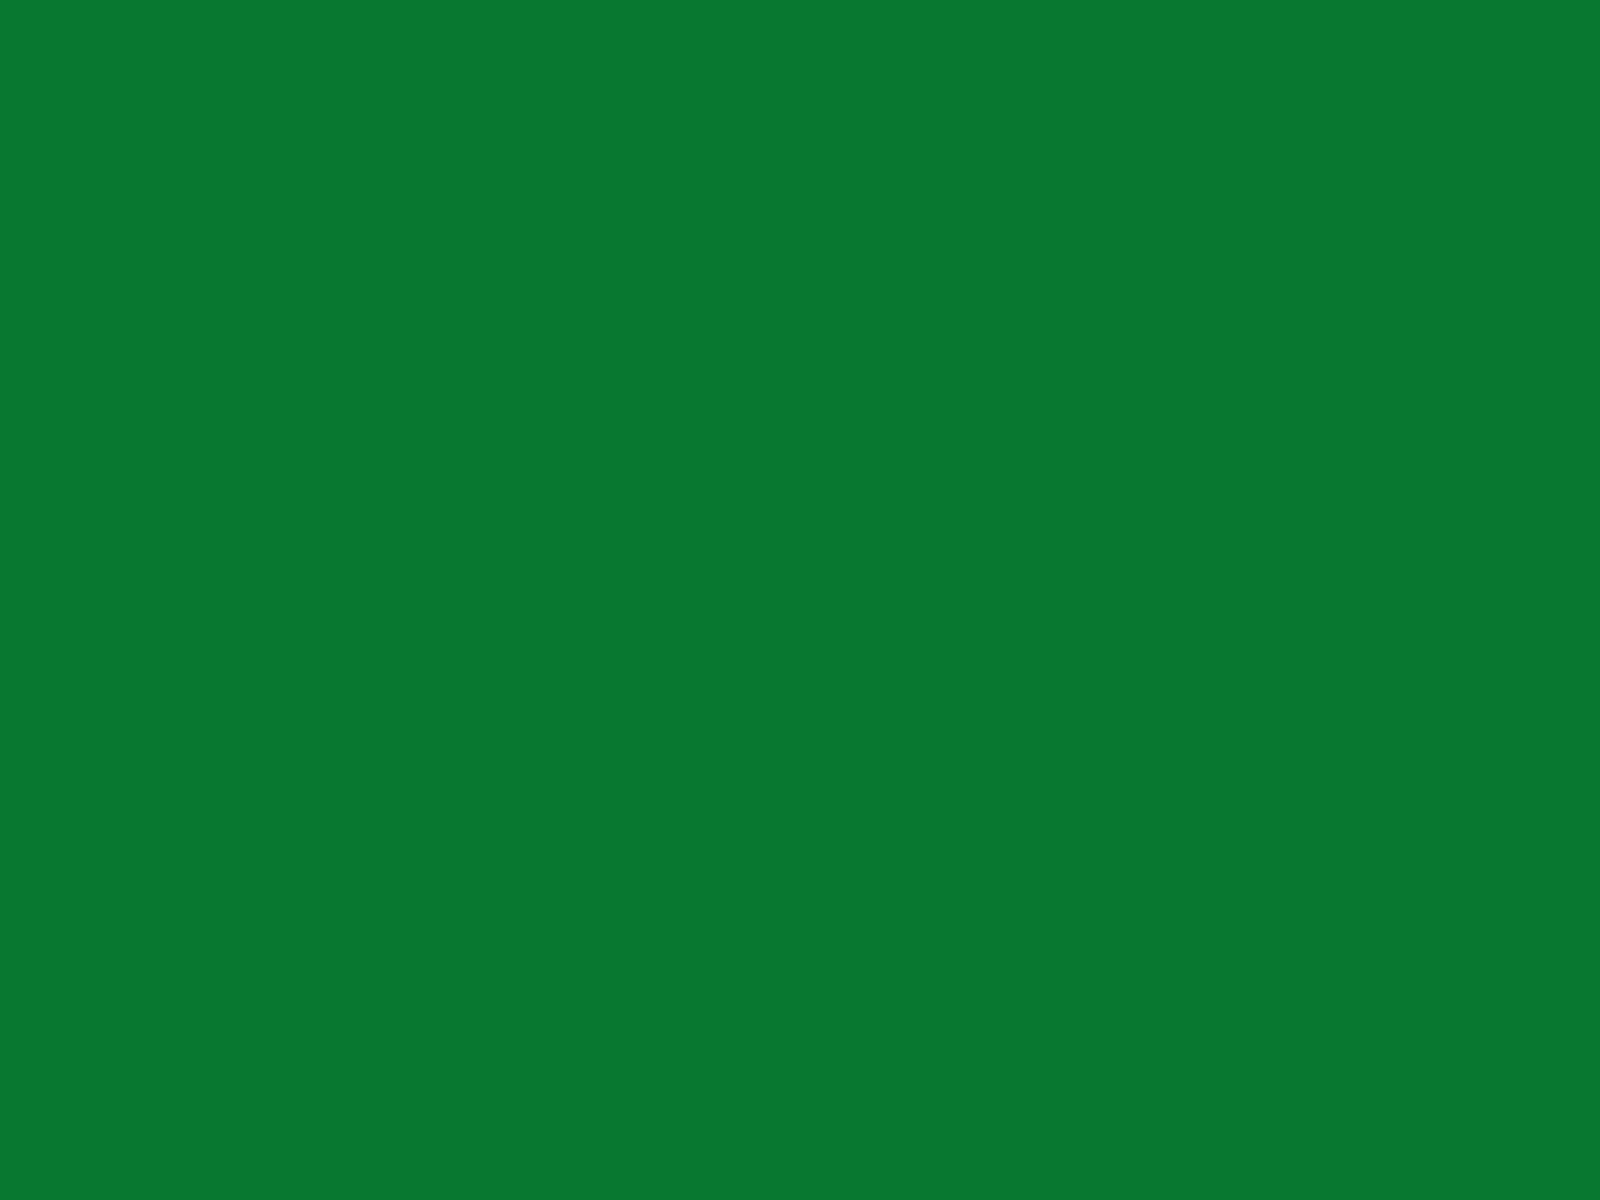 1600x1200 La Salle Green Solid Color Background